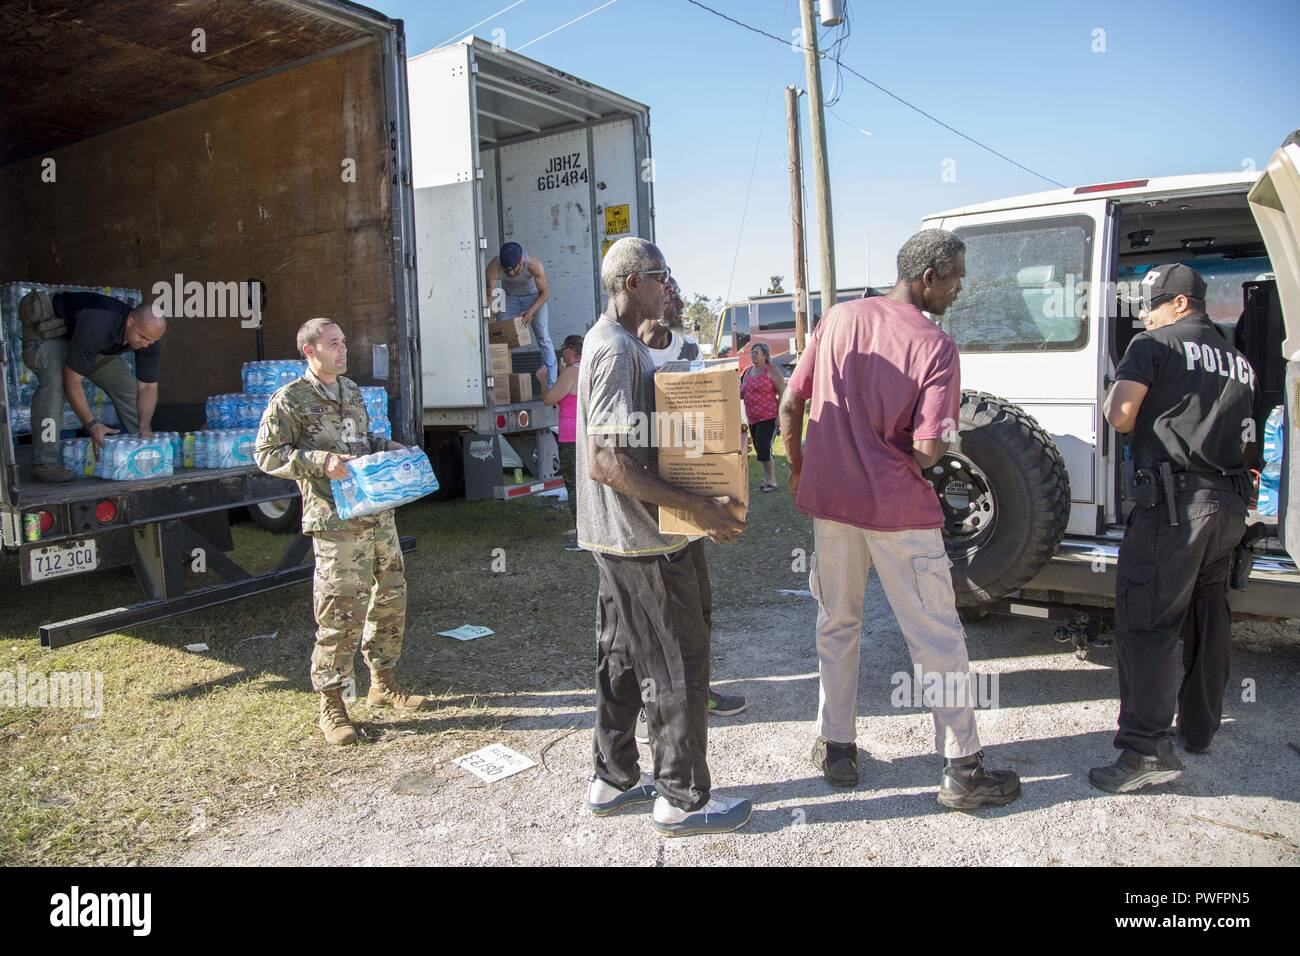 Blountstown, FL, October 13, 2018 - volunteers load vehicles with food and water at a Point of Distribution site during Hurricane Michael relief efforts, October 13, 2018. Point of Distribution or POD is where the public goes to pick up emergency supplies following a disaster. Spc. Andrea Serhan/CAISE. () - Stock Image